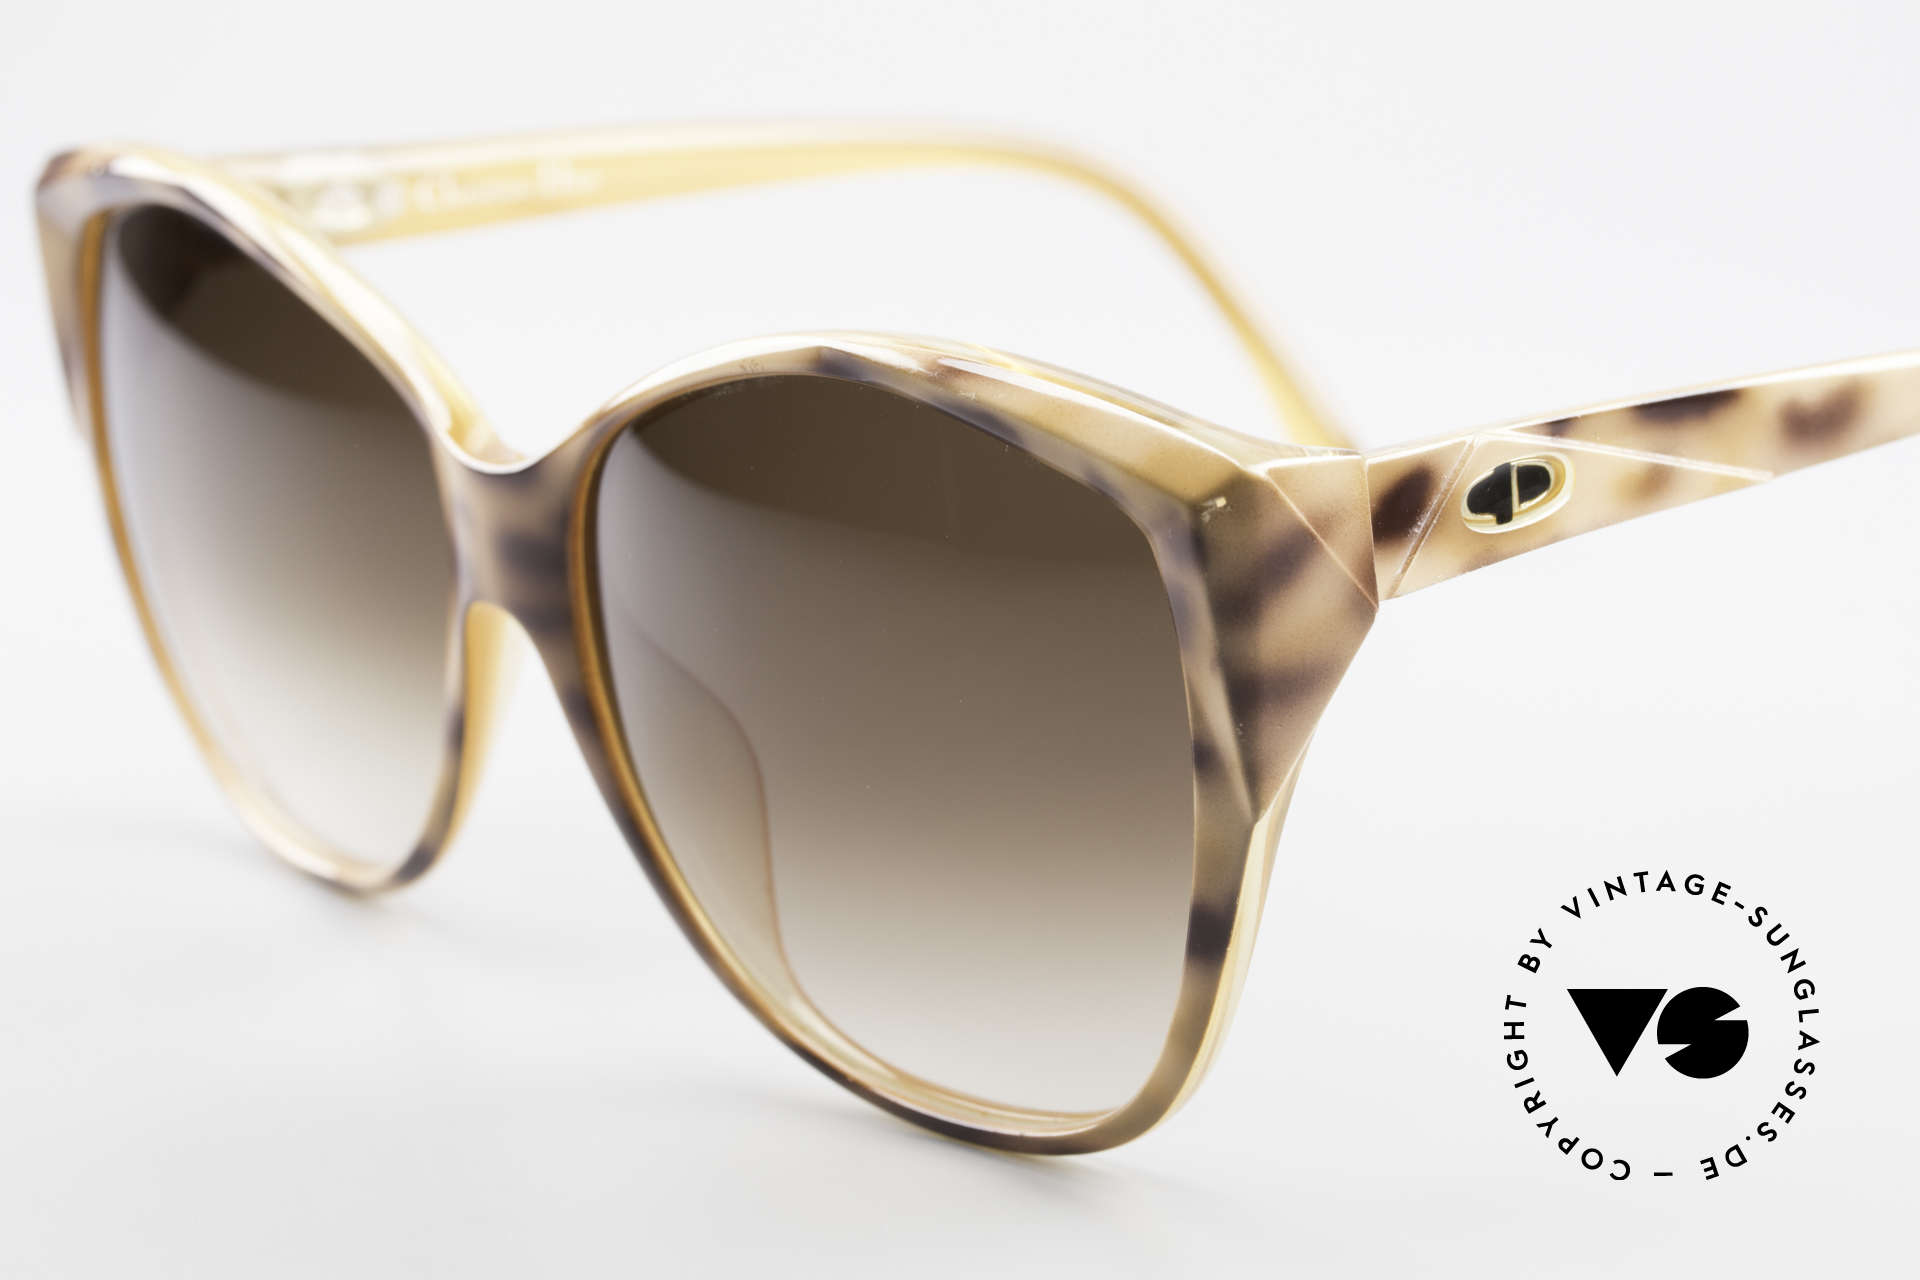 Christian Dior 2233 XL 80's Ladies Sunglasses, oversized Dior model, but very feminine and appealing, Made for Women